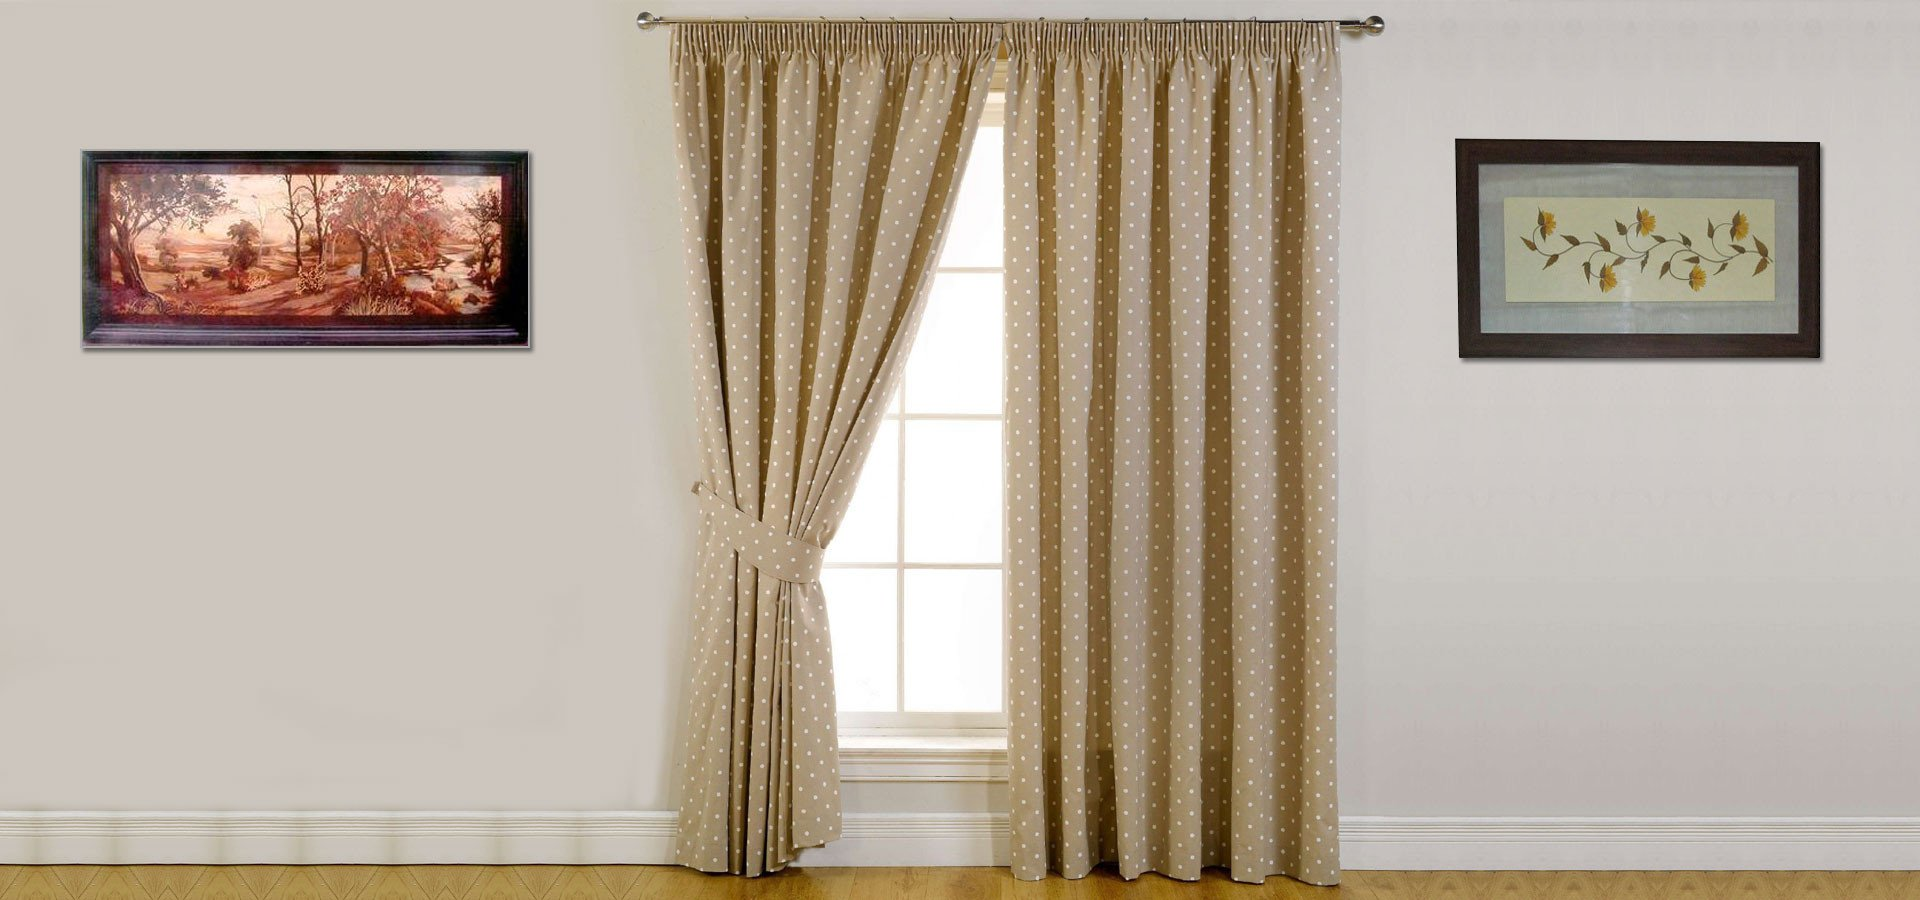 treatments window filtering glass ideas blinds doors slider curtain vertical for tips light sliding curtains premier